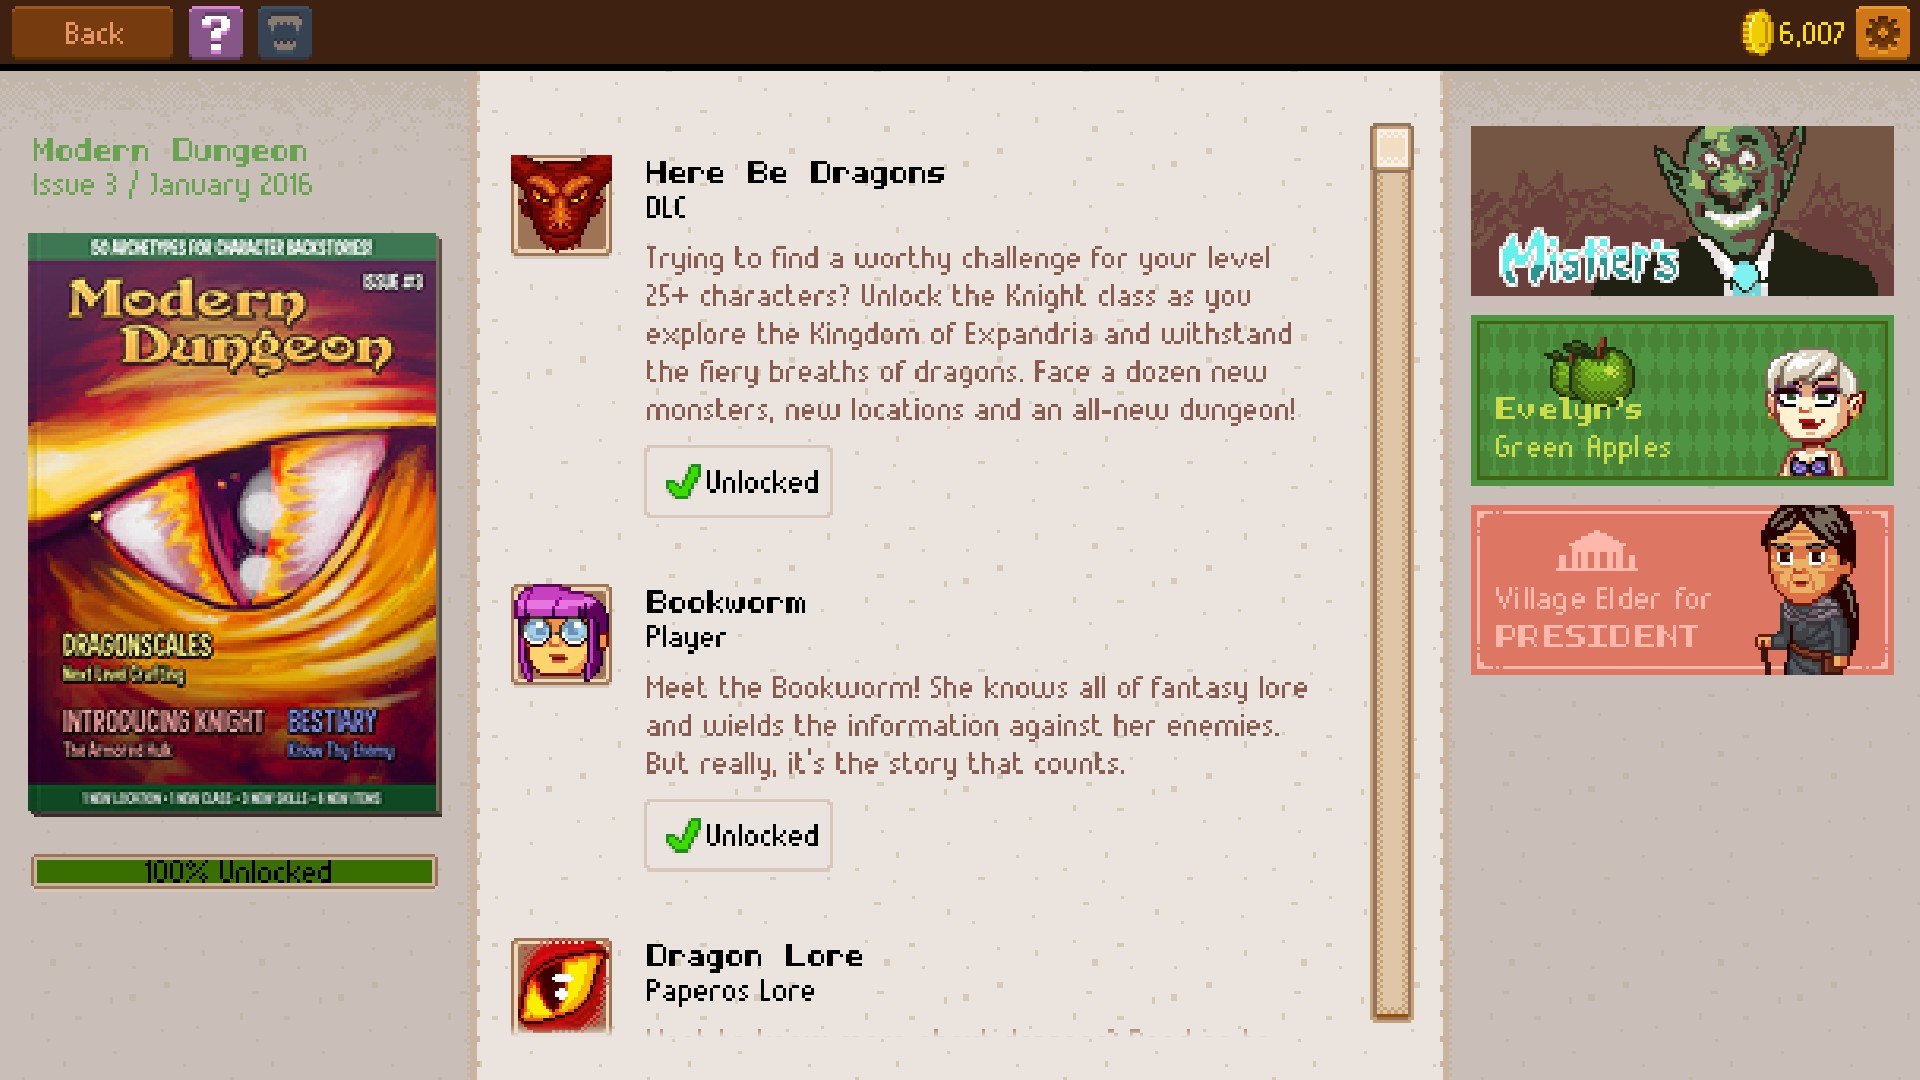 Knights of Pen and Paper 2 - Here Be Dragons screenshot